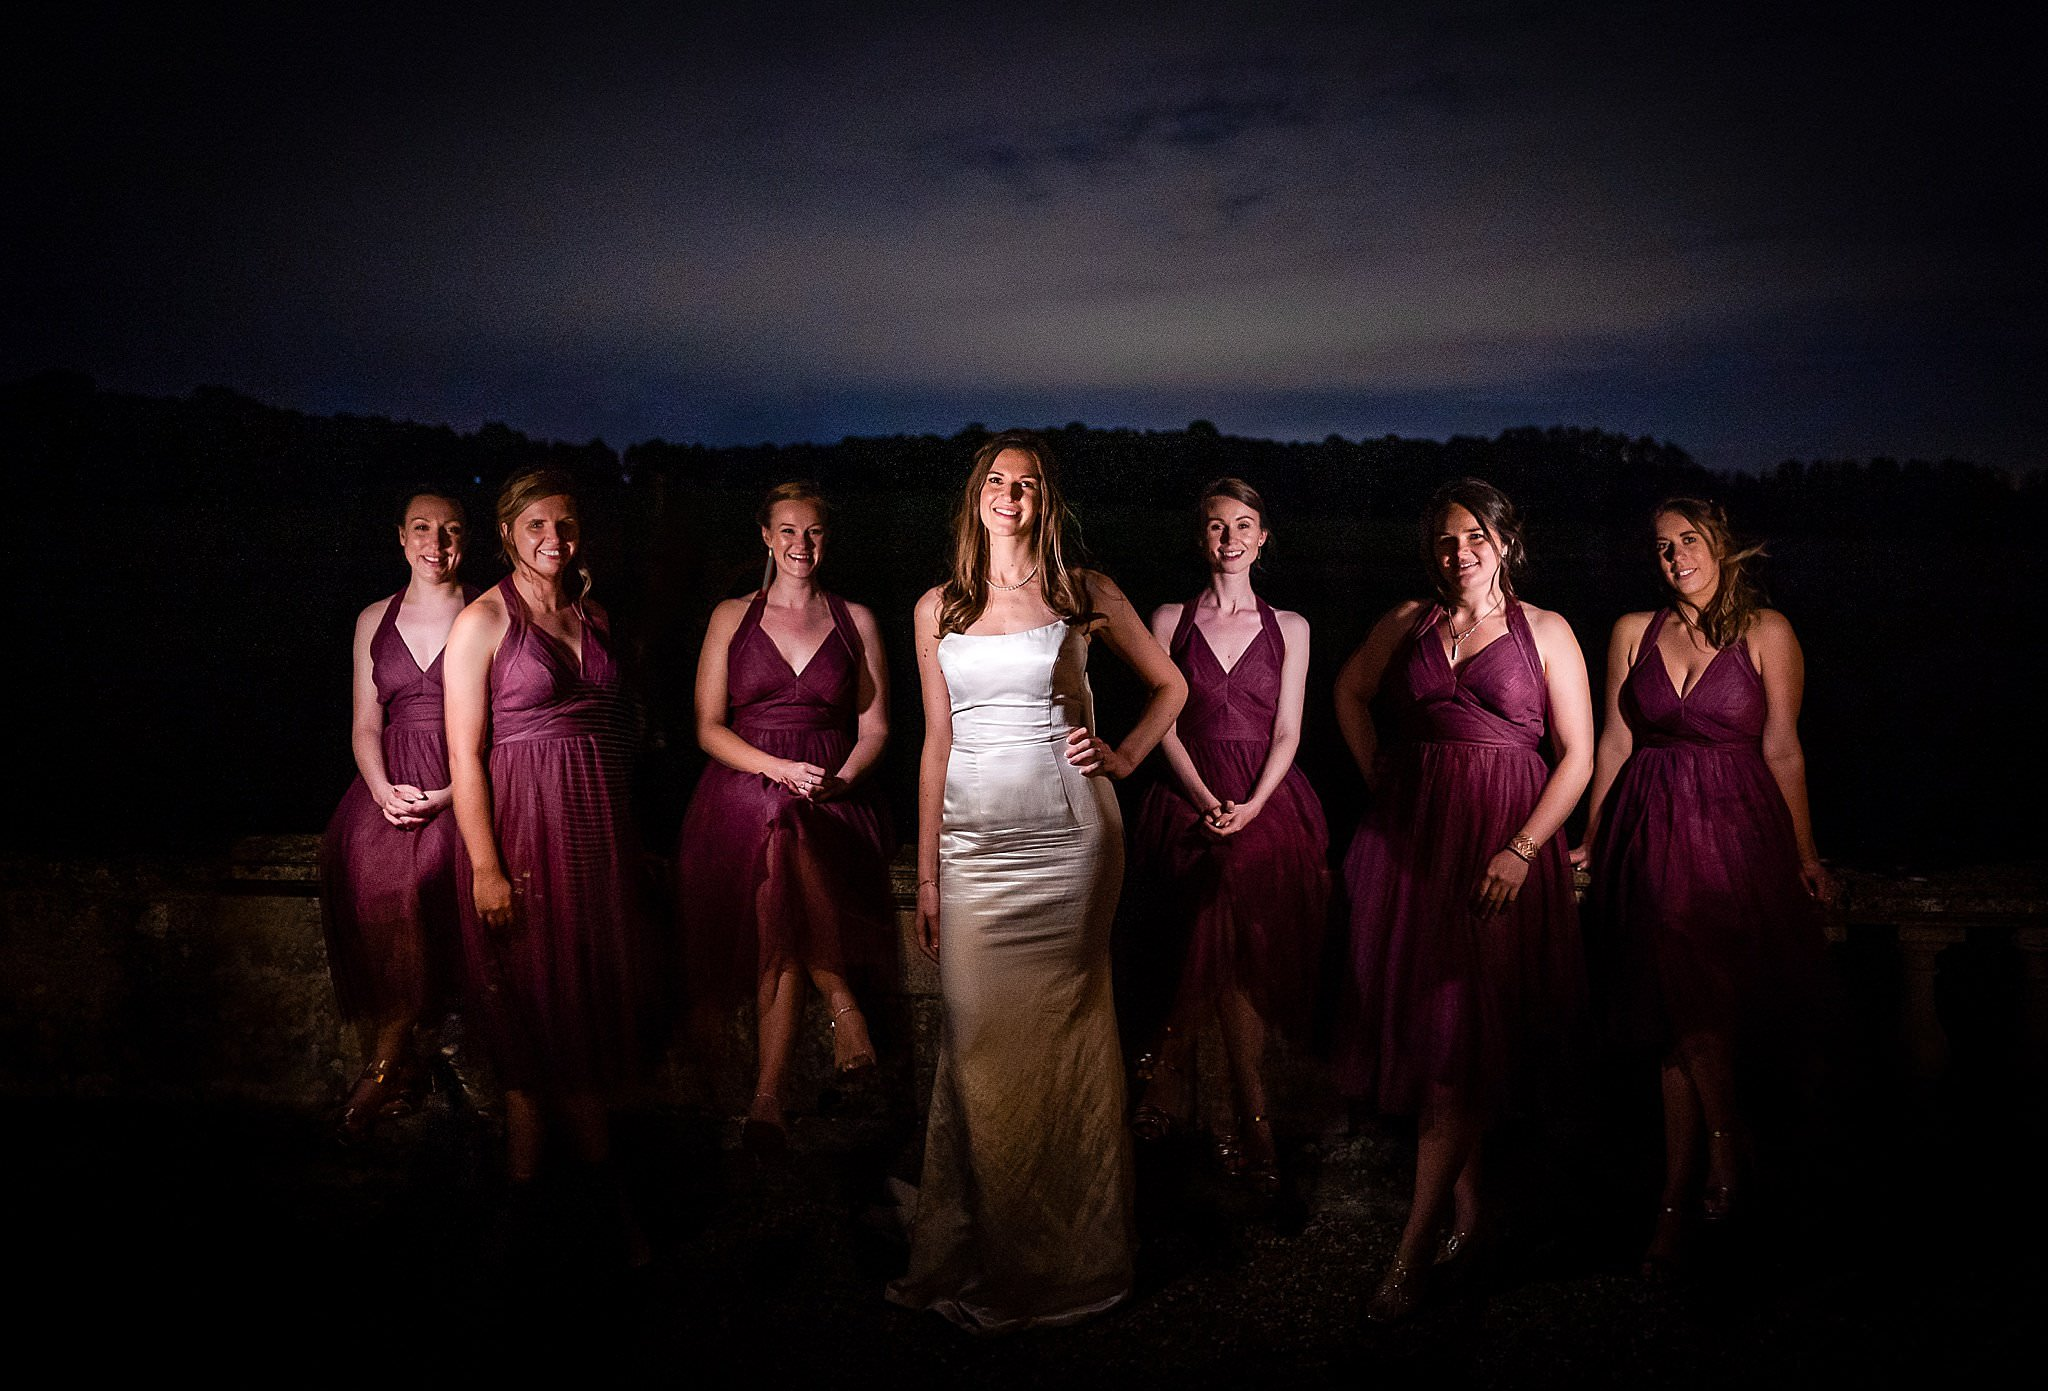 Bride posing with her bridesmaids with dramatic lighting at nighttime at Prestwold Hall